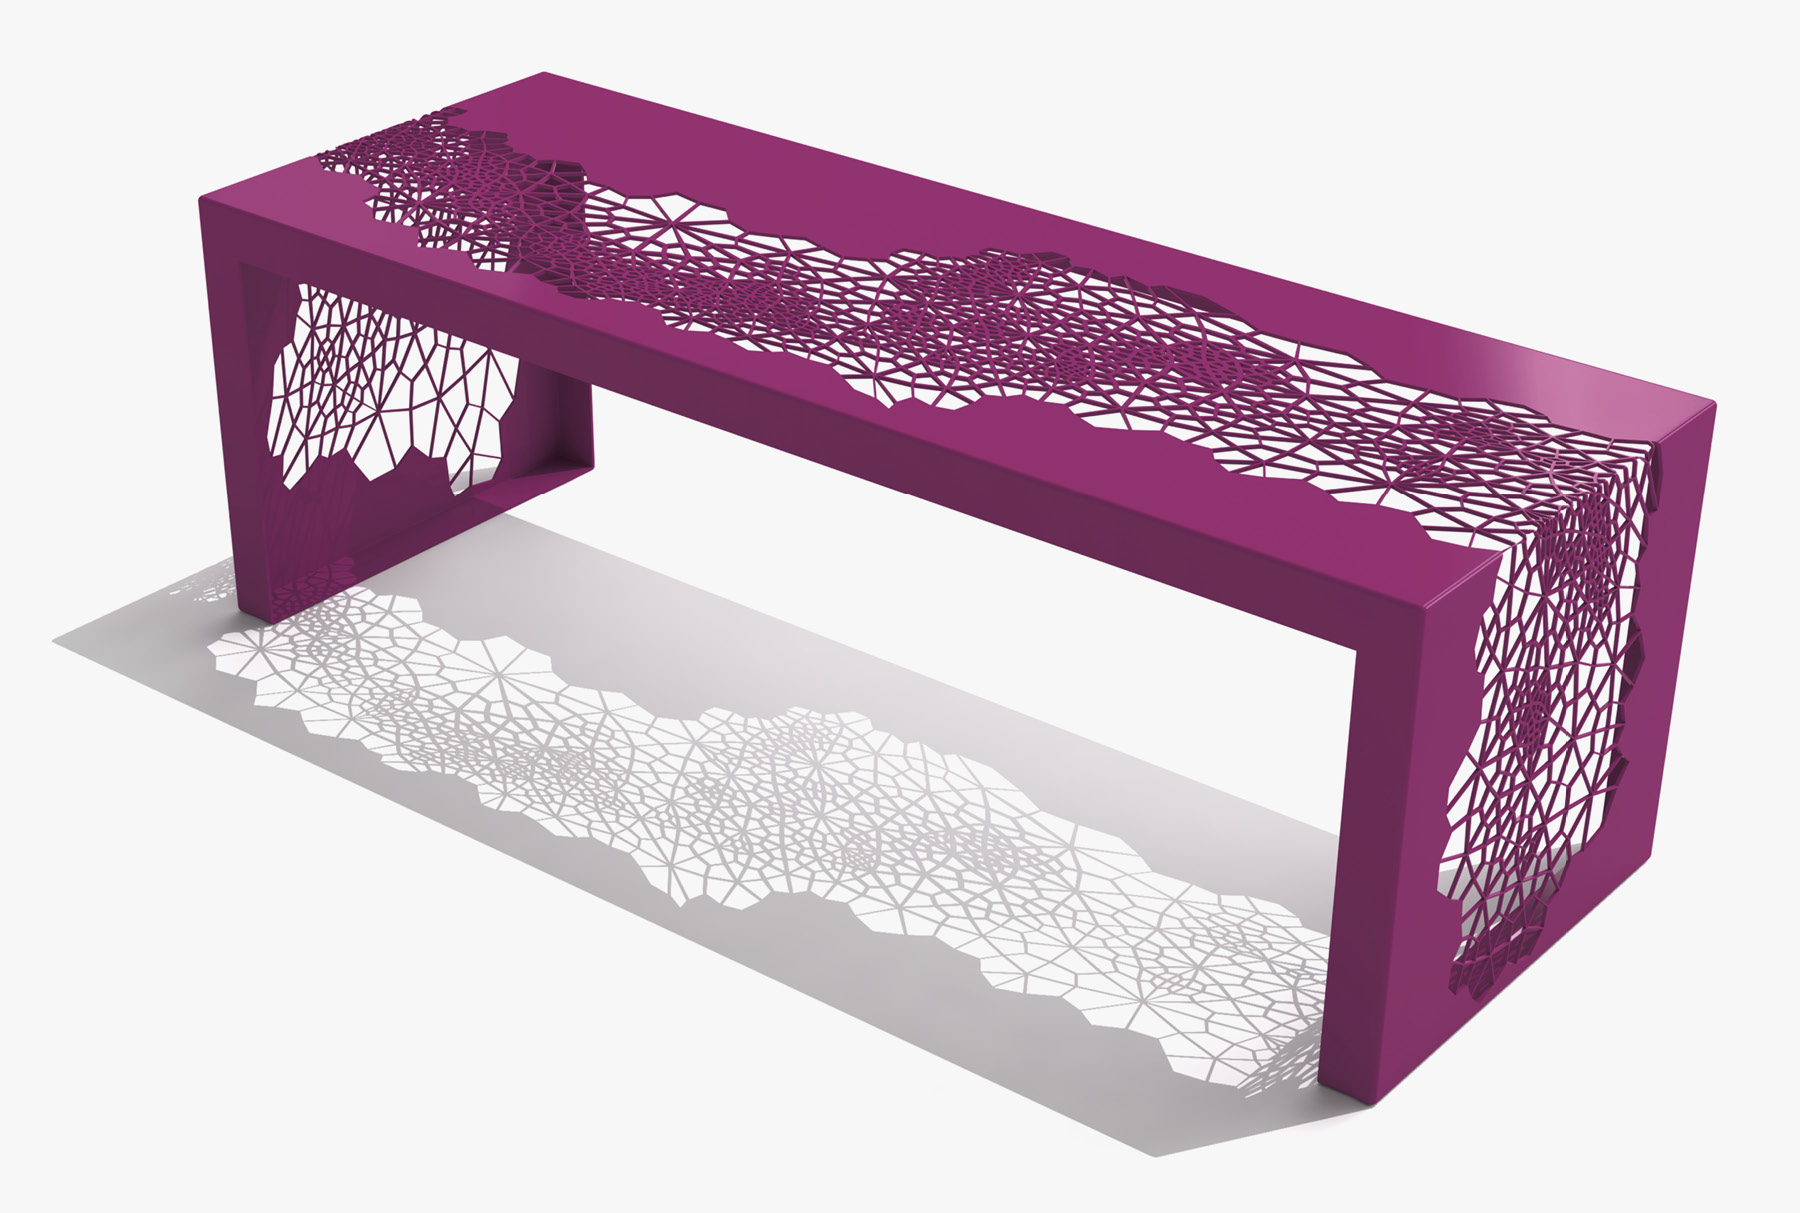 Arktura Hive Bench 50 in Wild Orchid